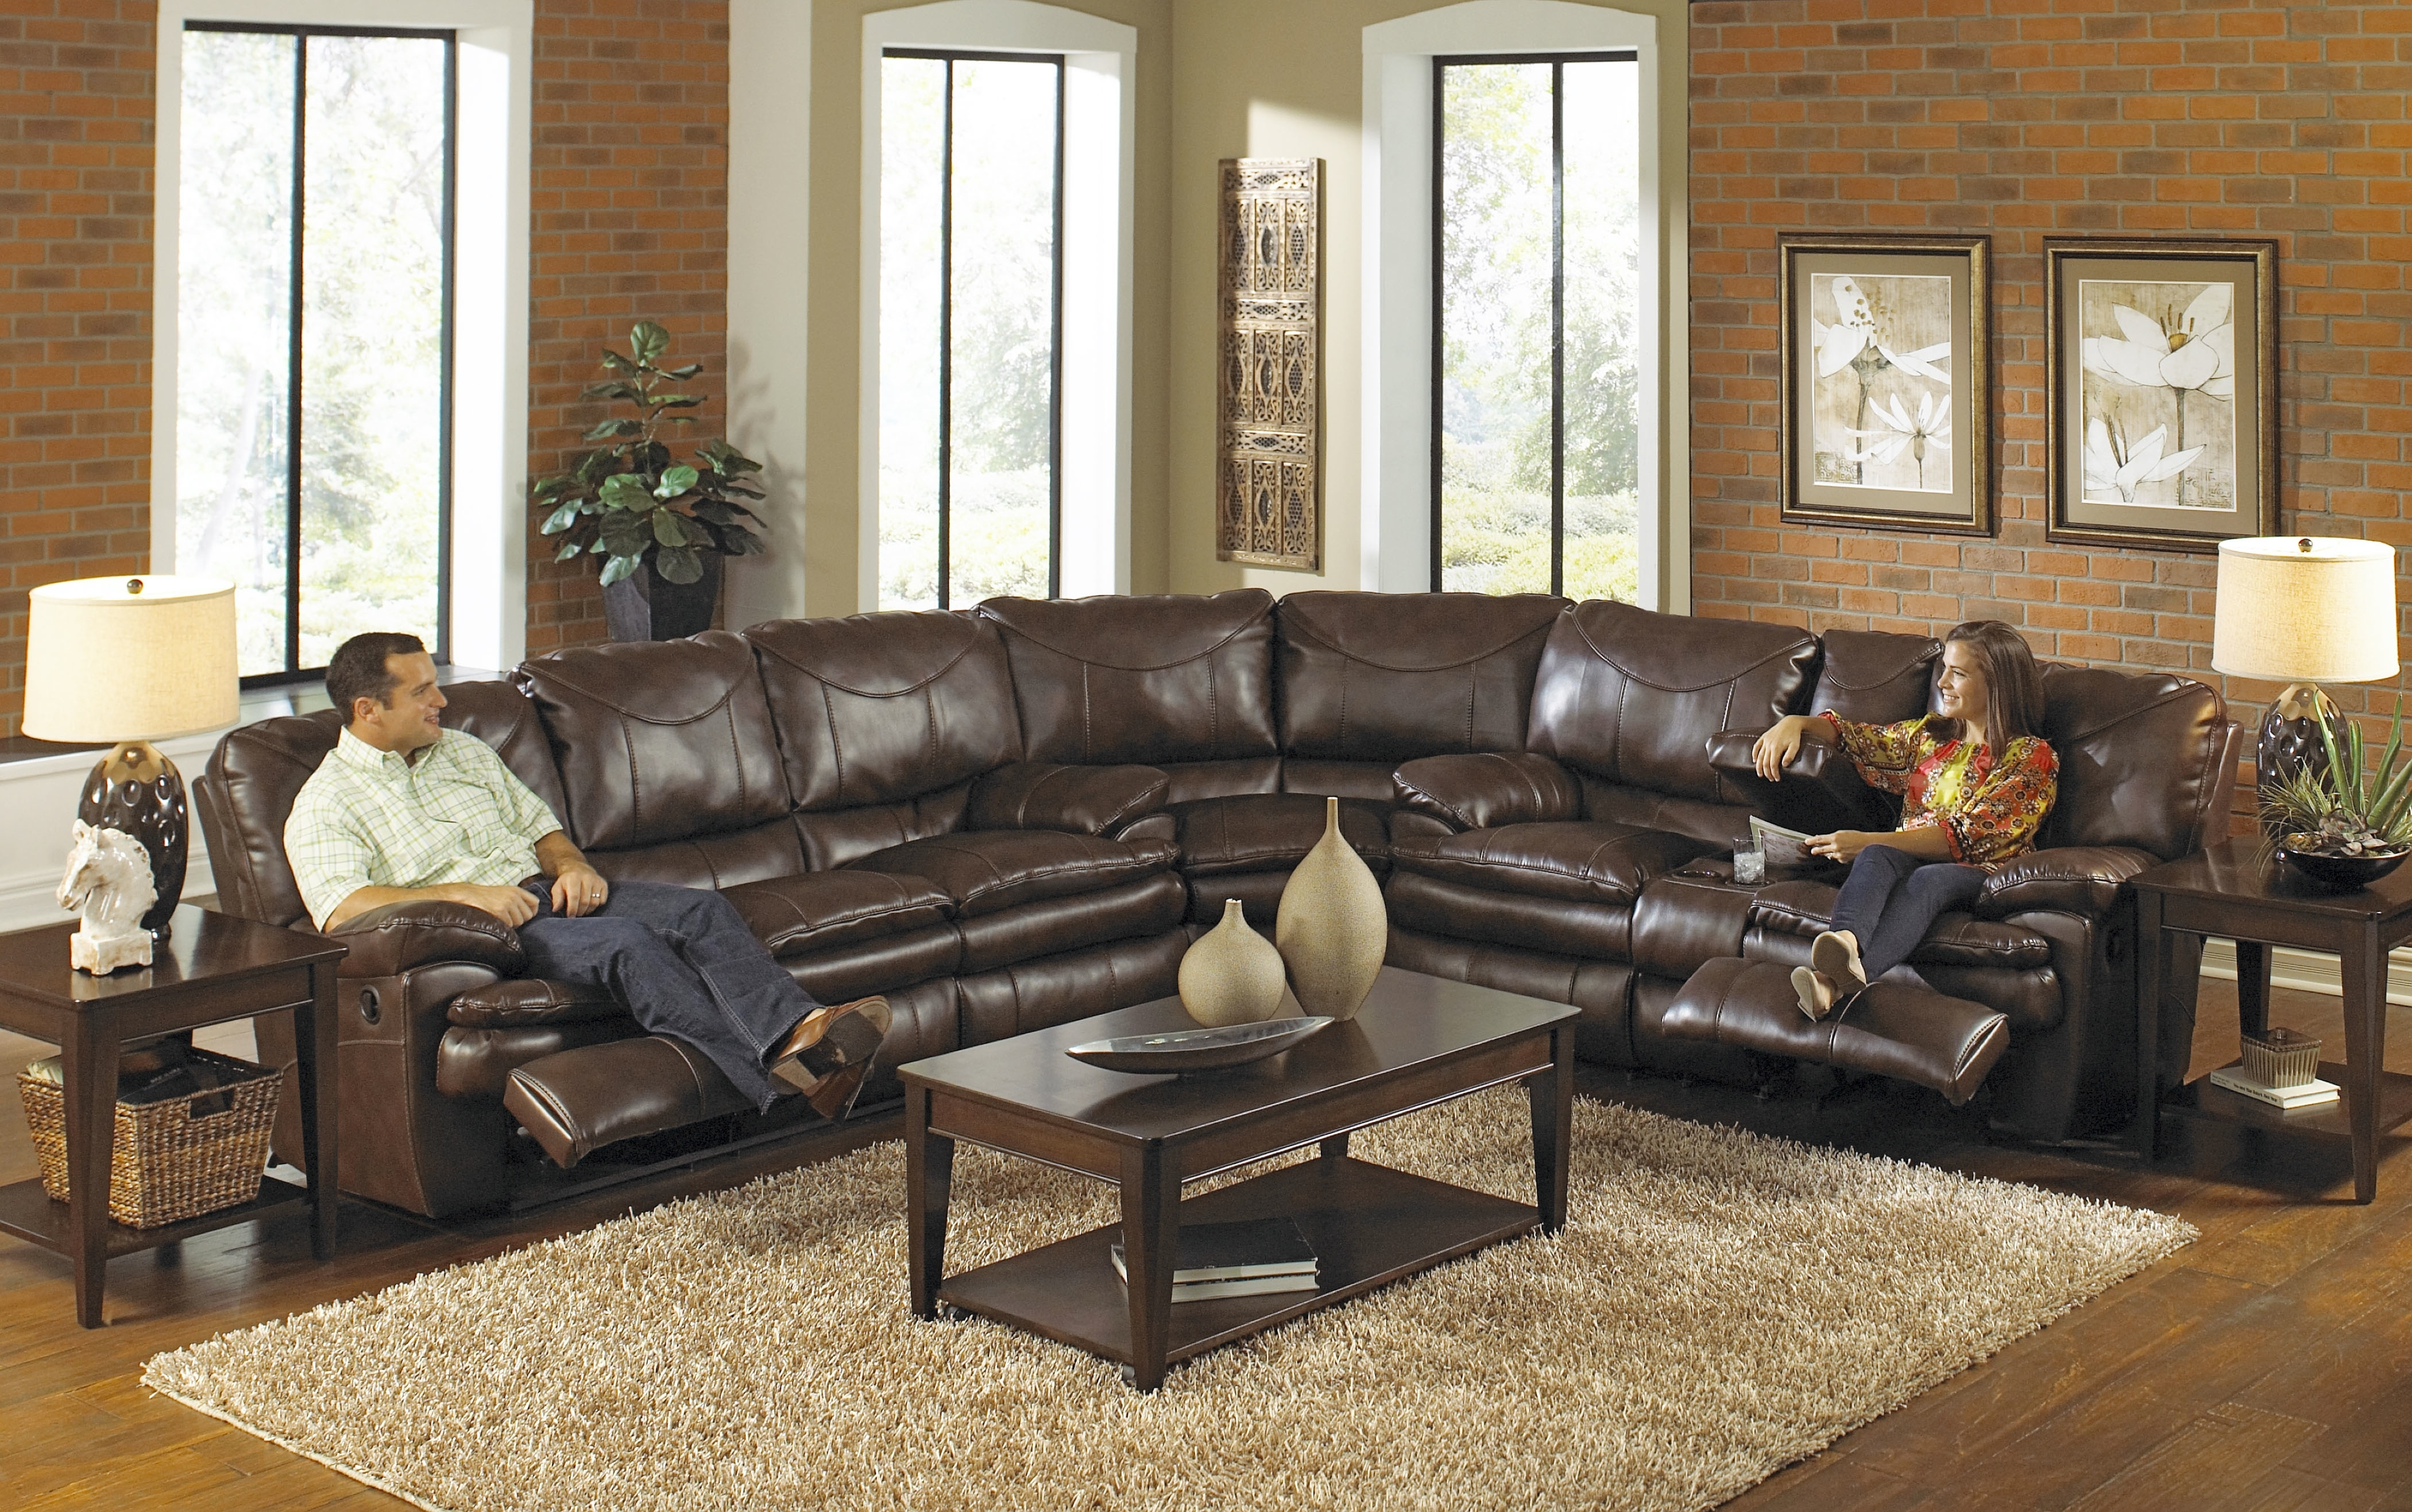 The Benefits Of Large Sectional Sofas – Elites Home Decor Pertaining To Wide Sectional Sofas (View 10 of 10)